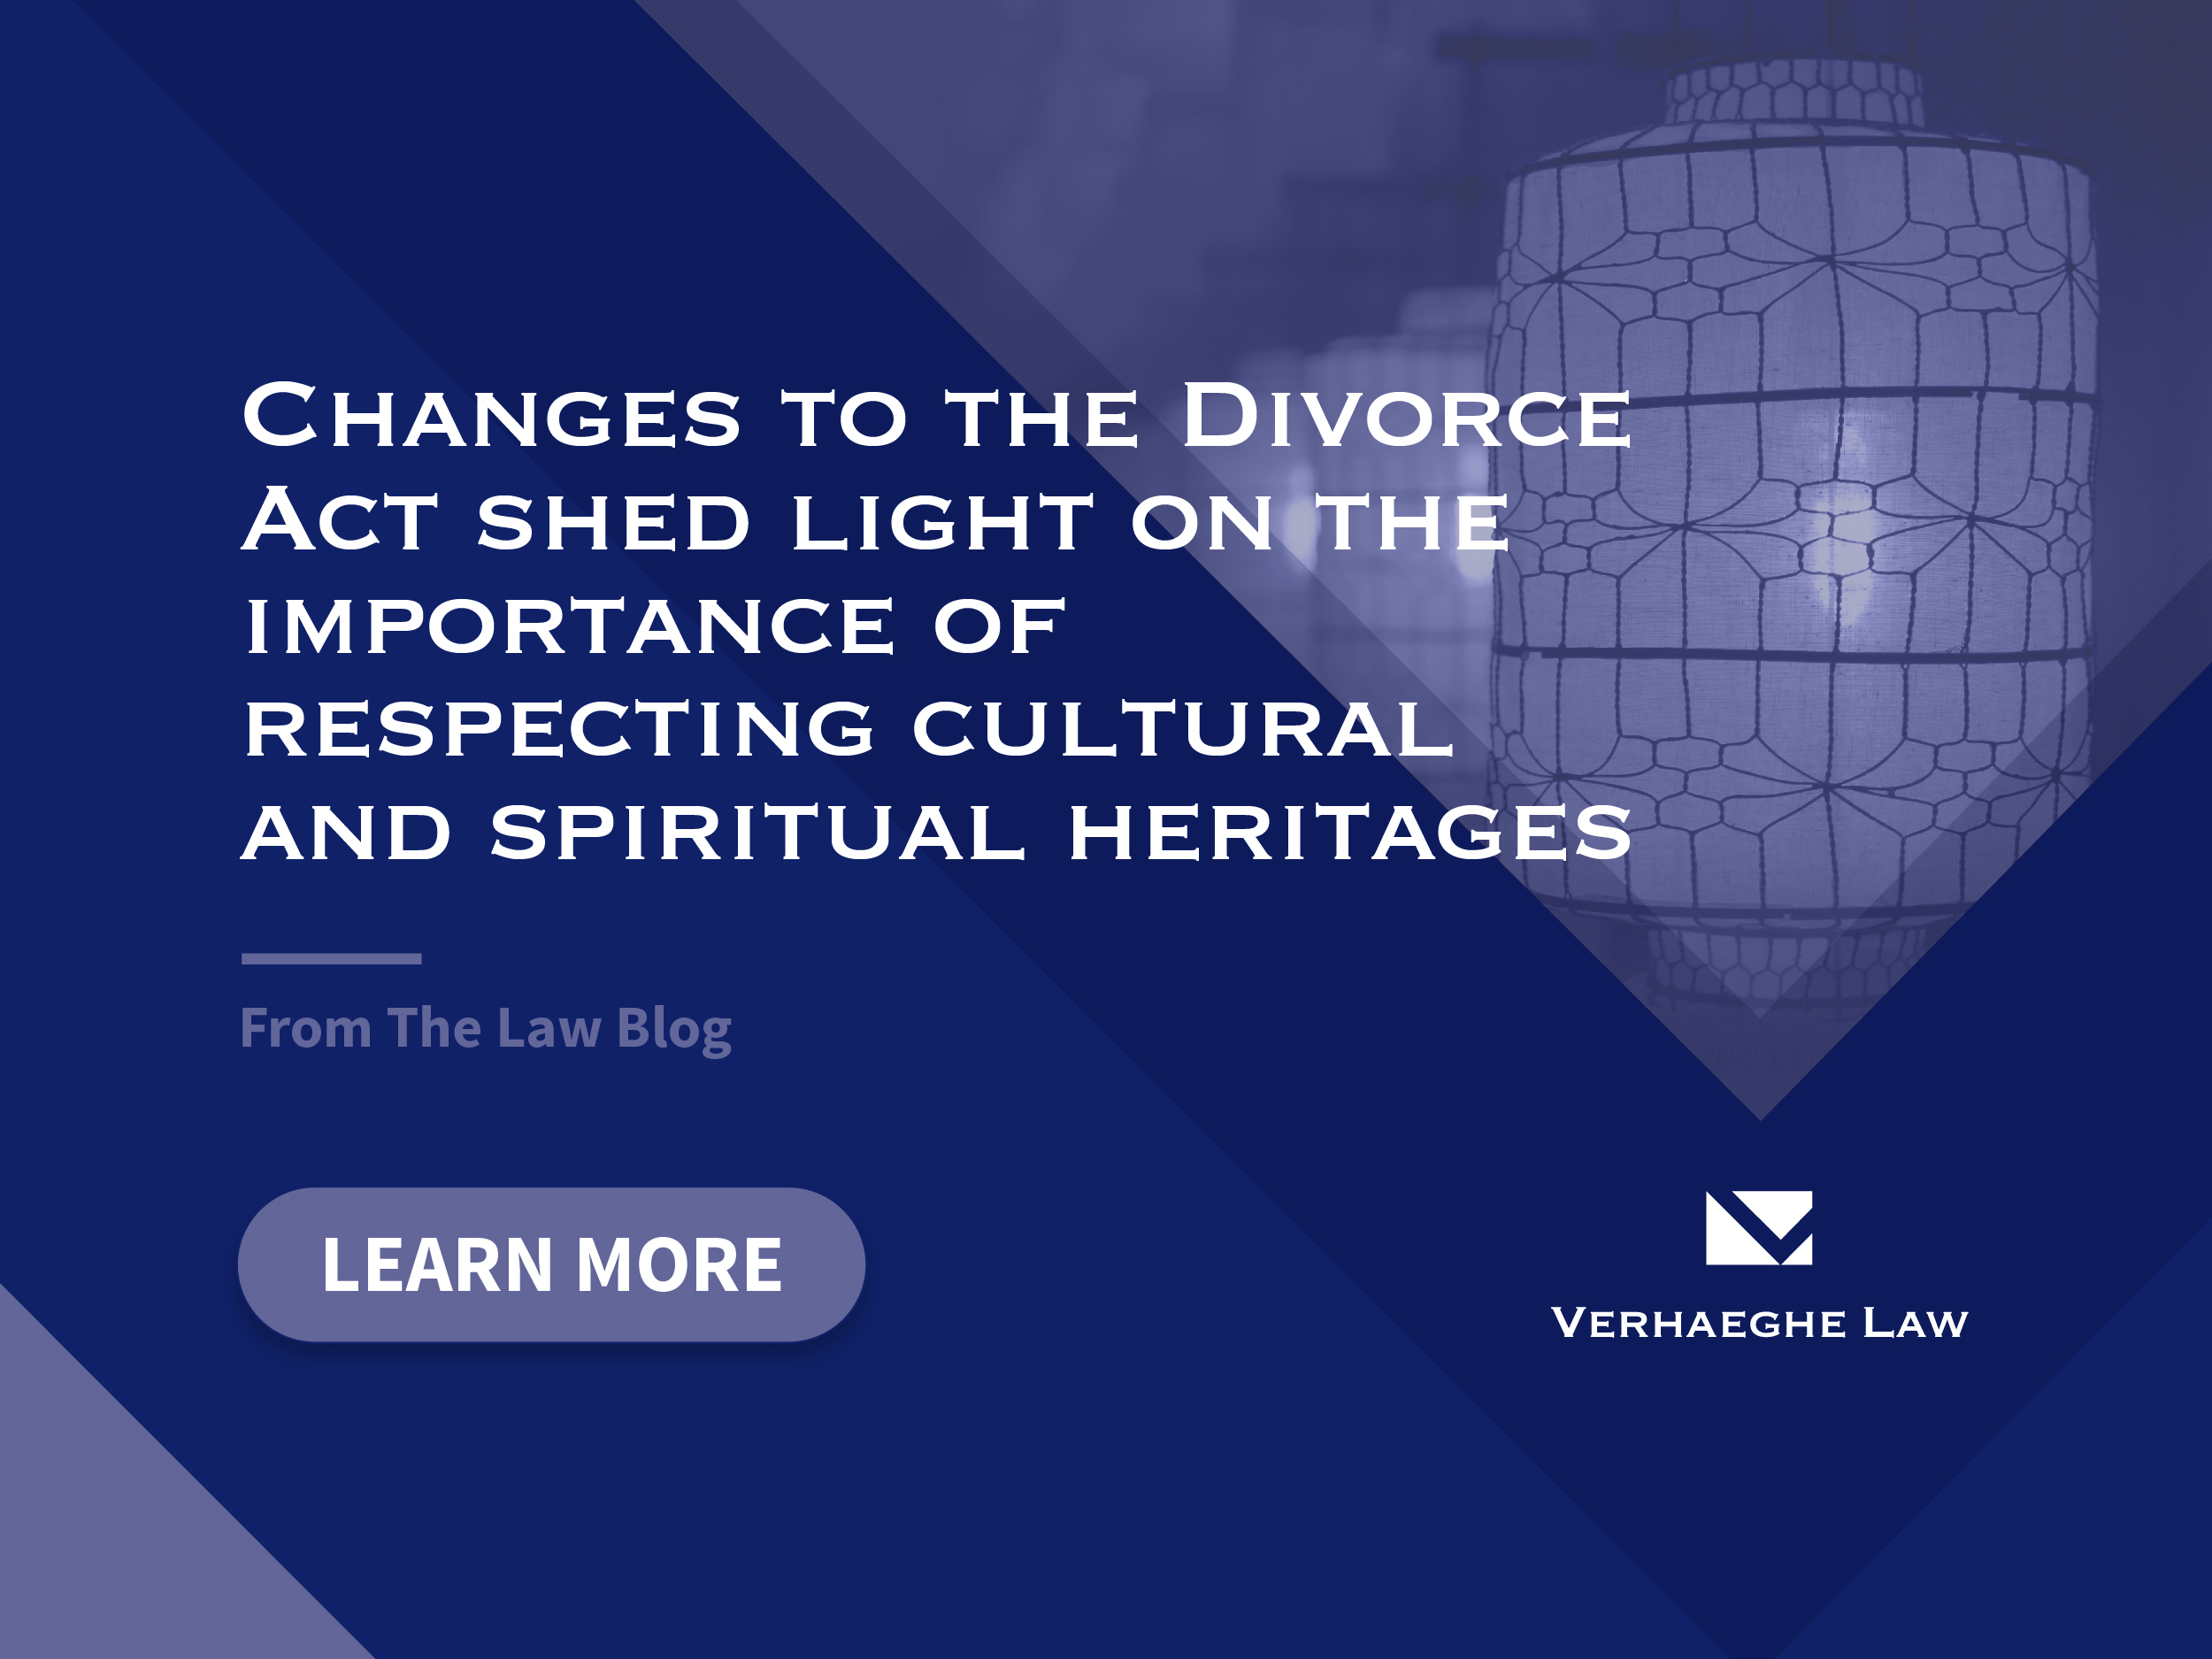 Changes to the Divorce Act Shed Light on the Importance of Respecting Cultural and Spiritual Heritage